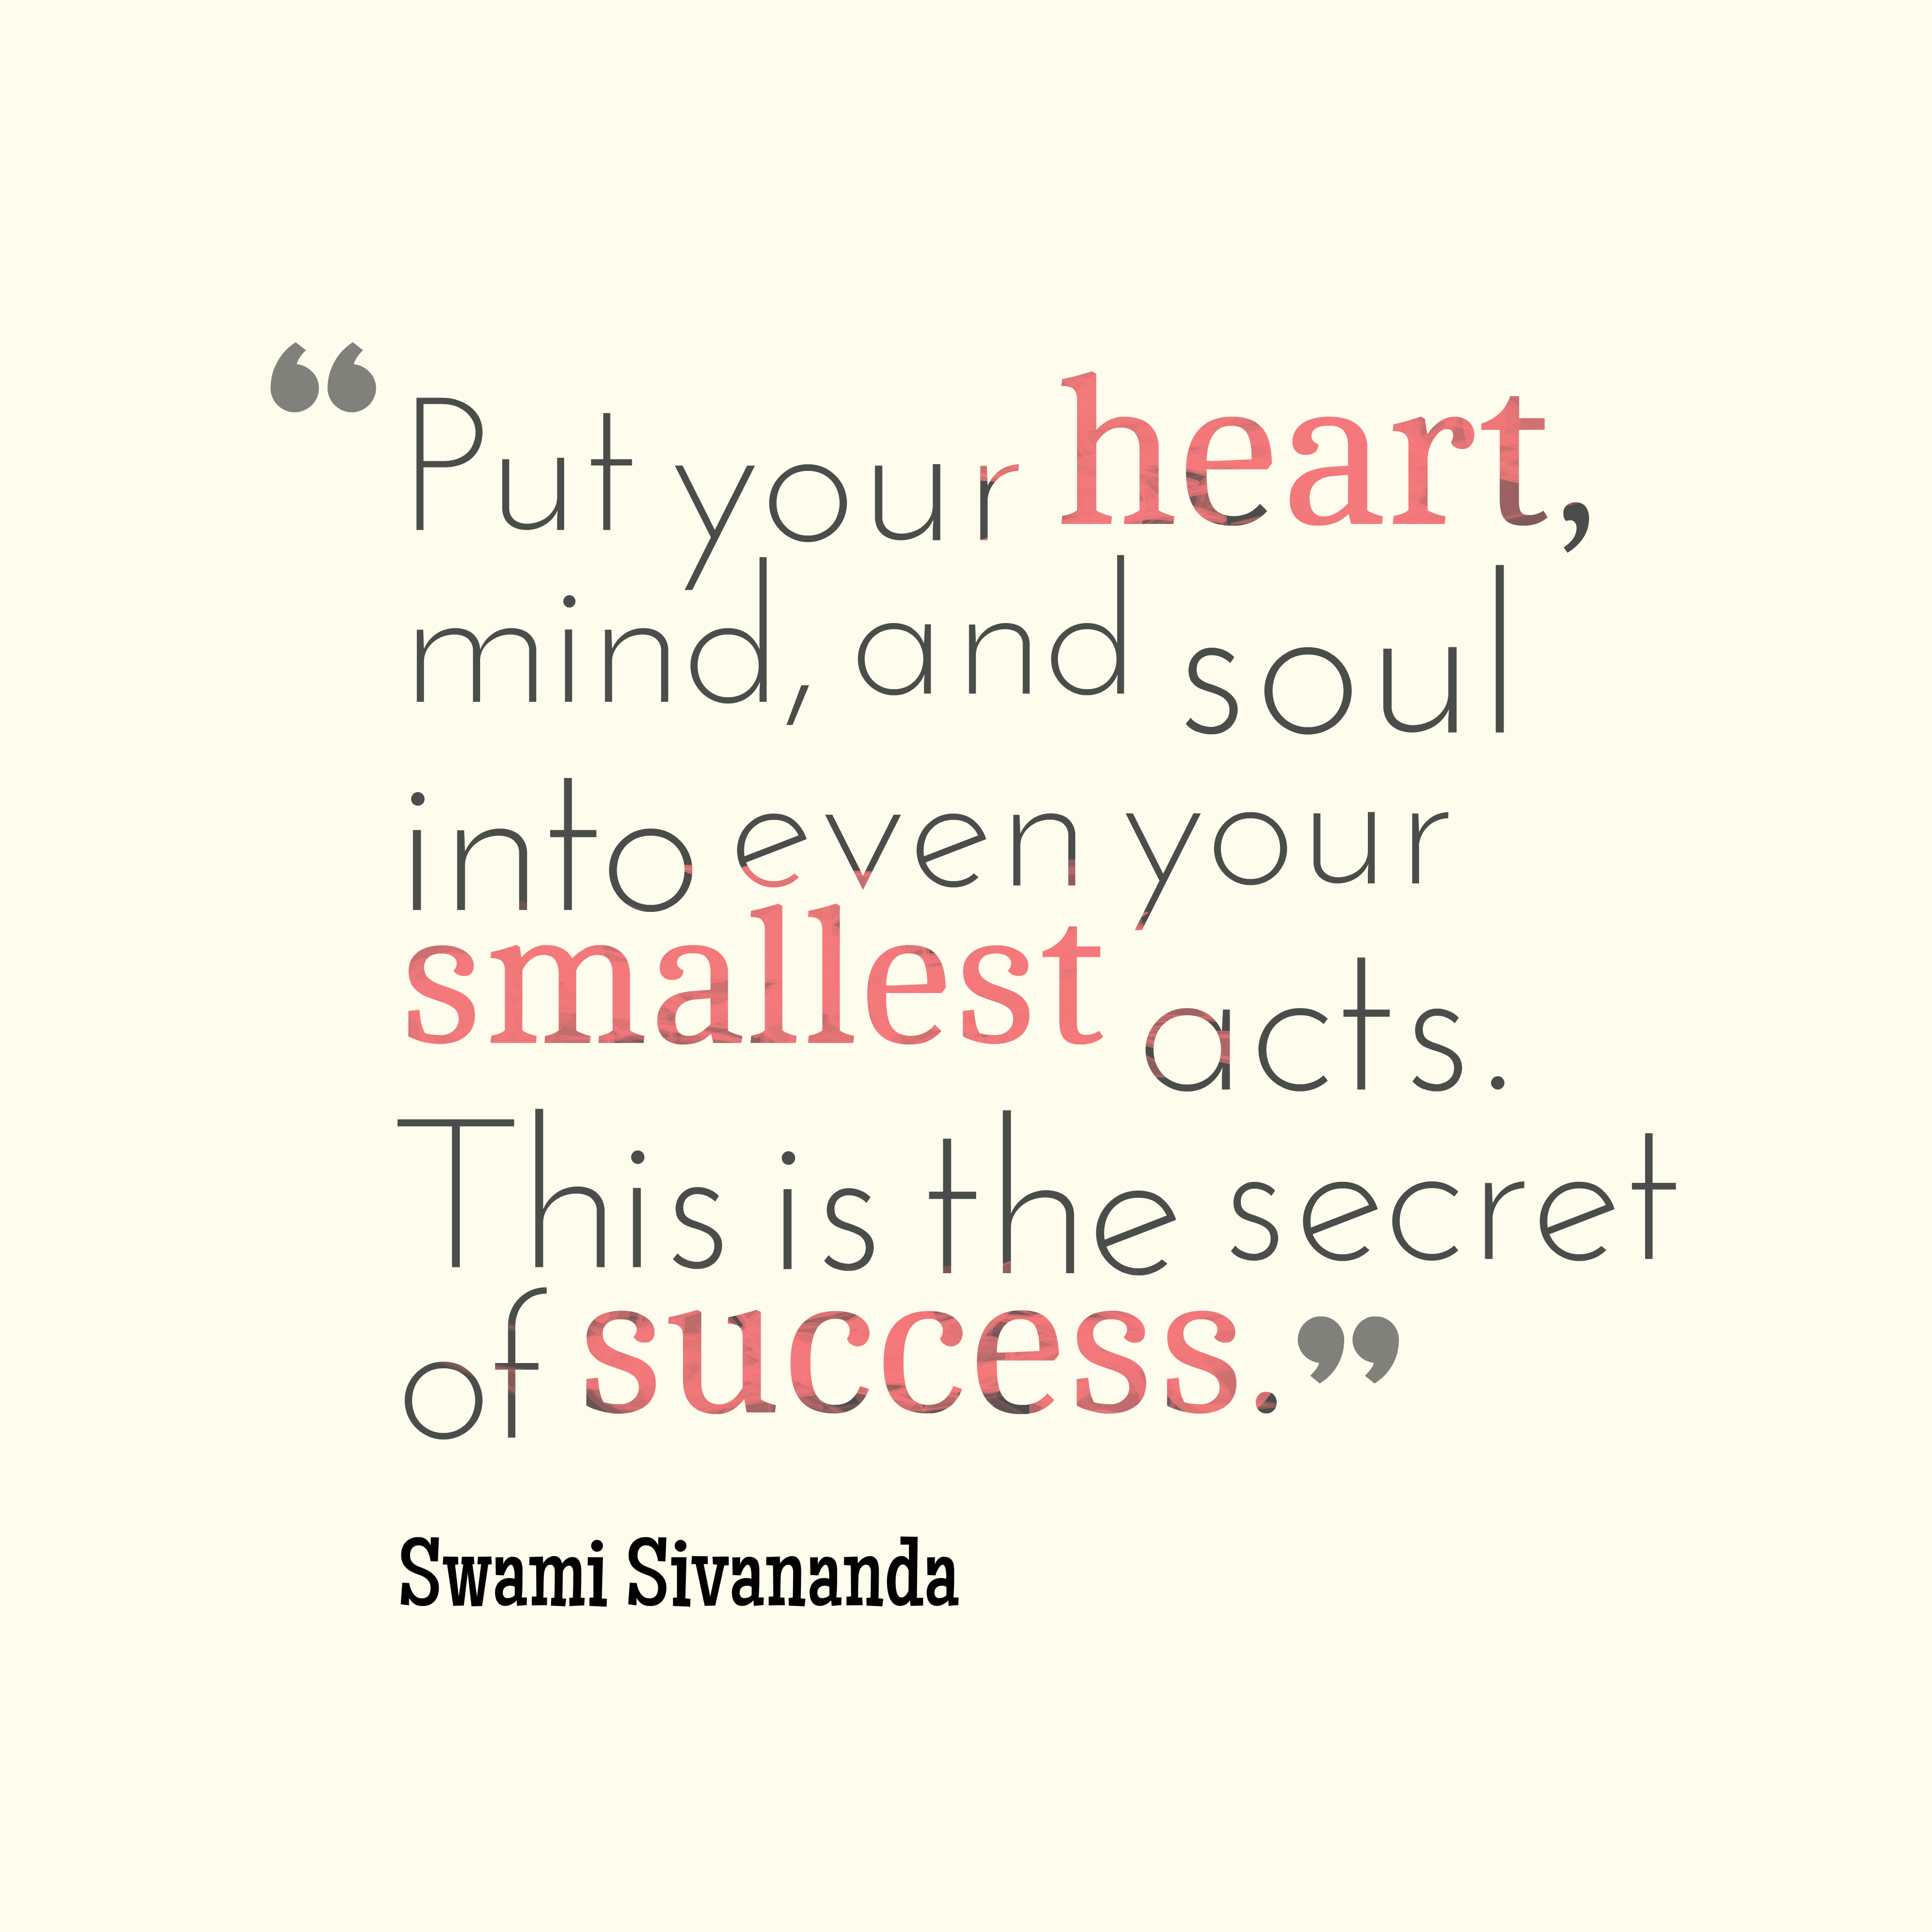 Swami Sivananda Quote About Success